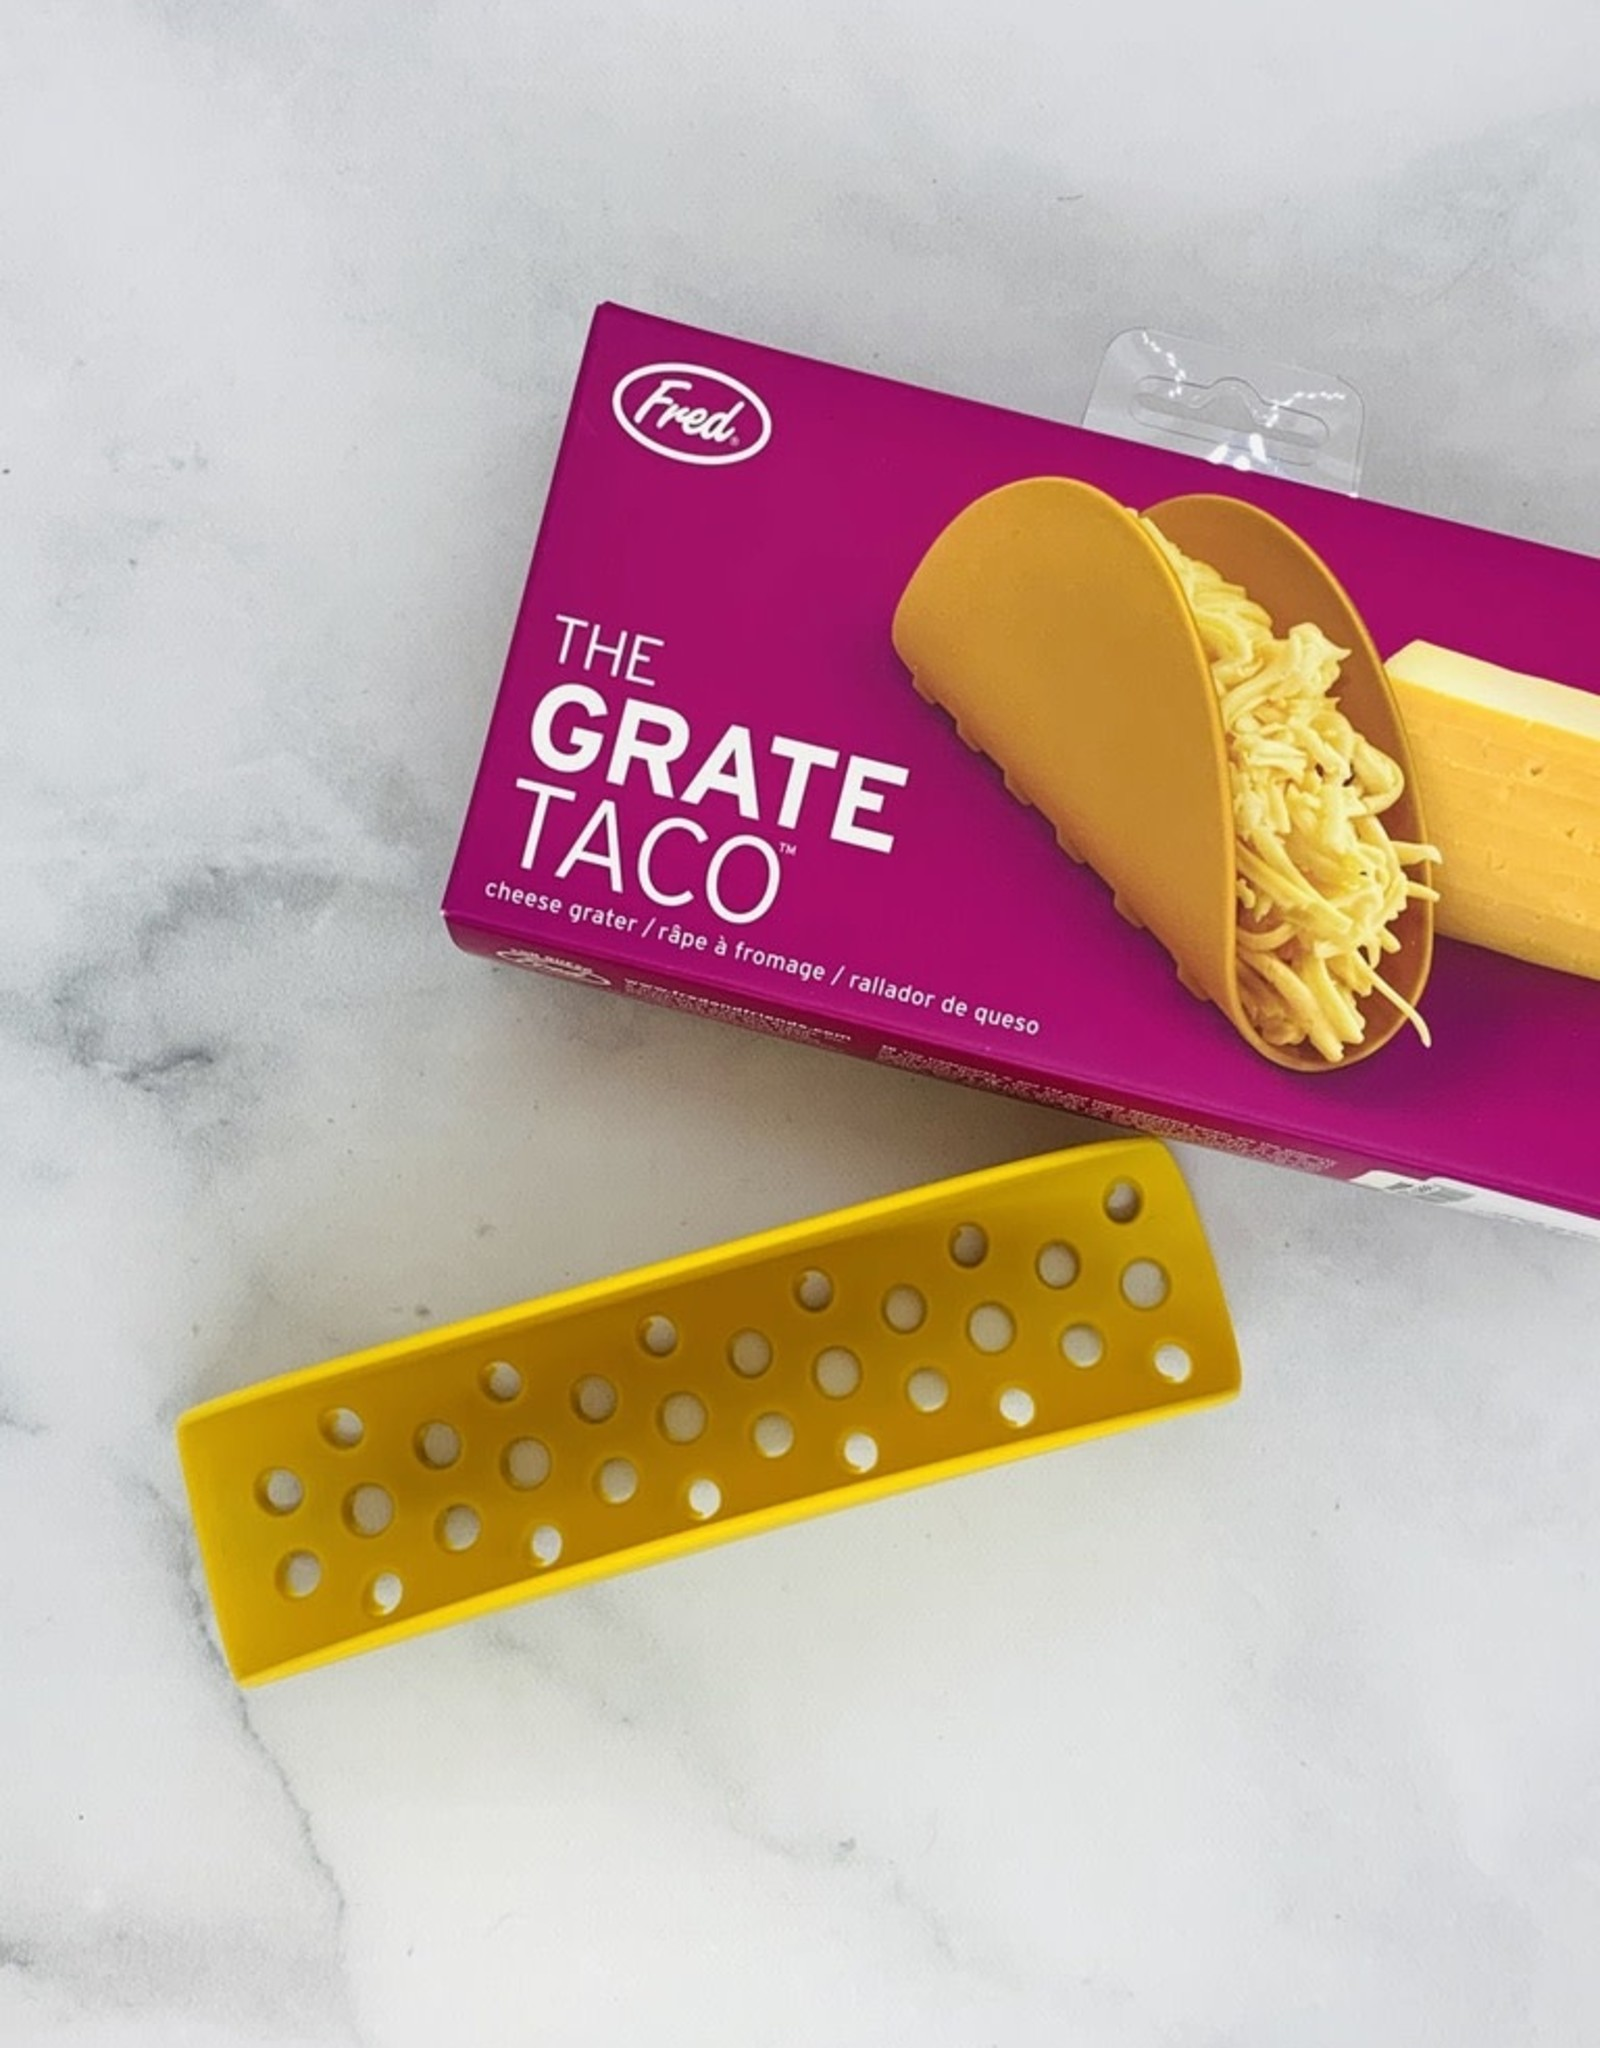 Fred The Grate Taco cheese grater